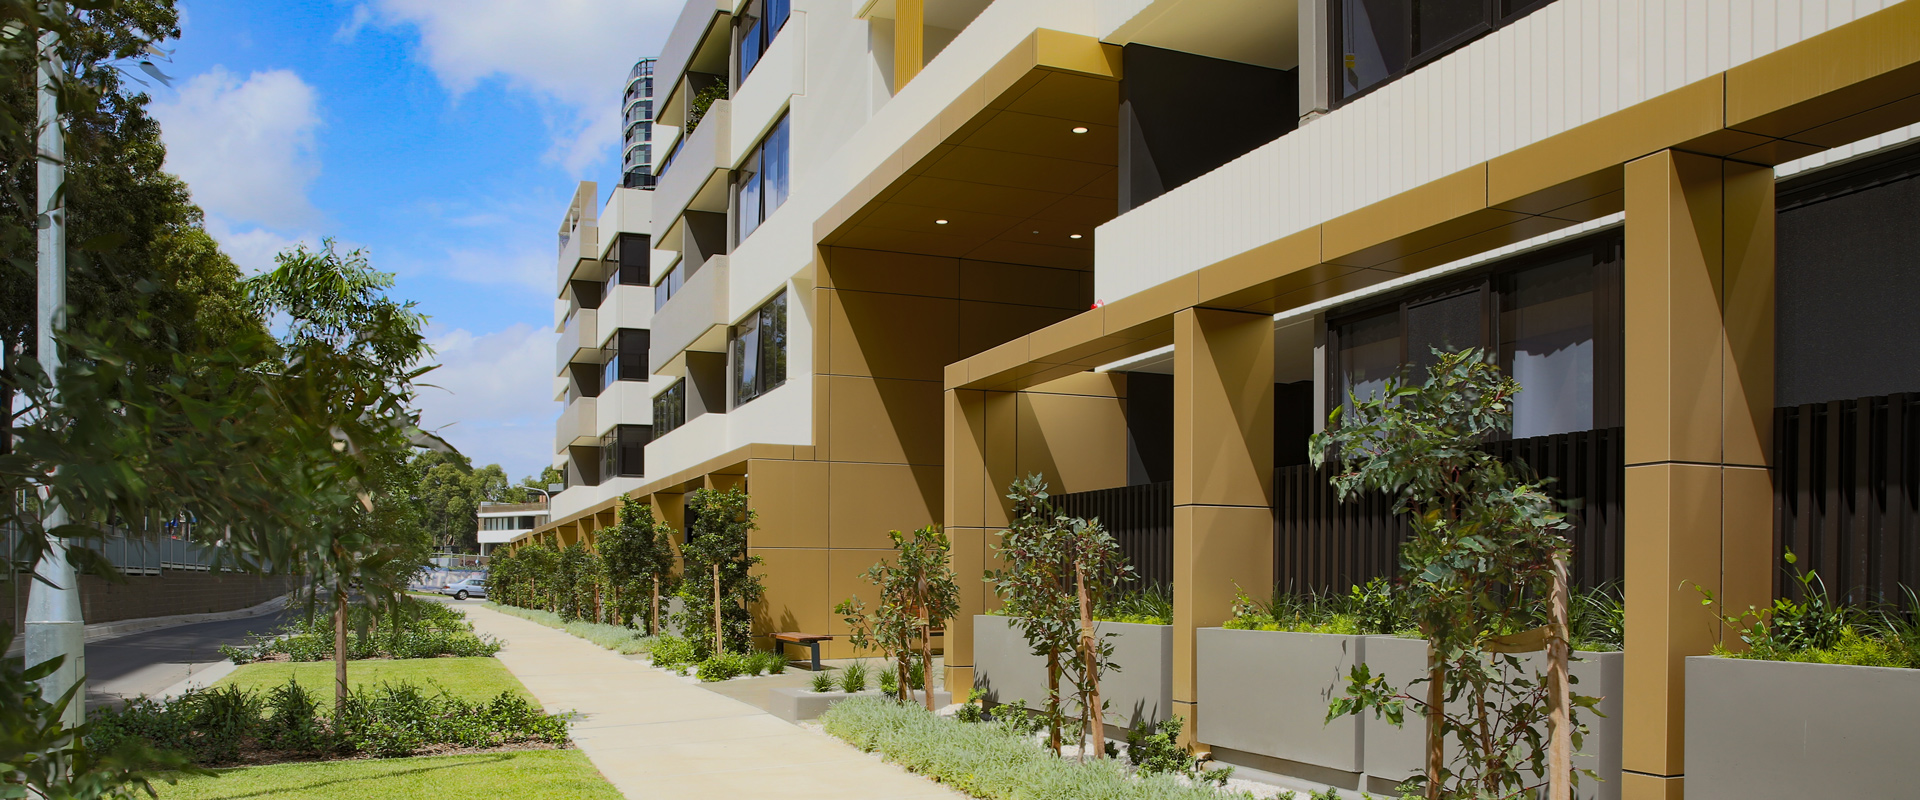 Apartments for Sale Sydney Olympic Park NSW | The Retreat ...